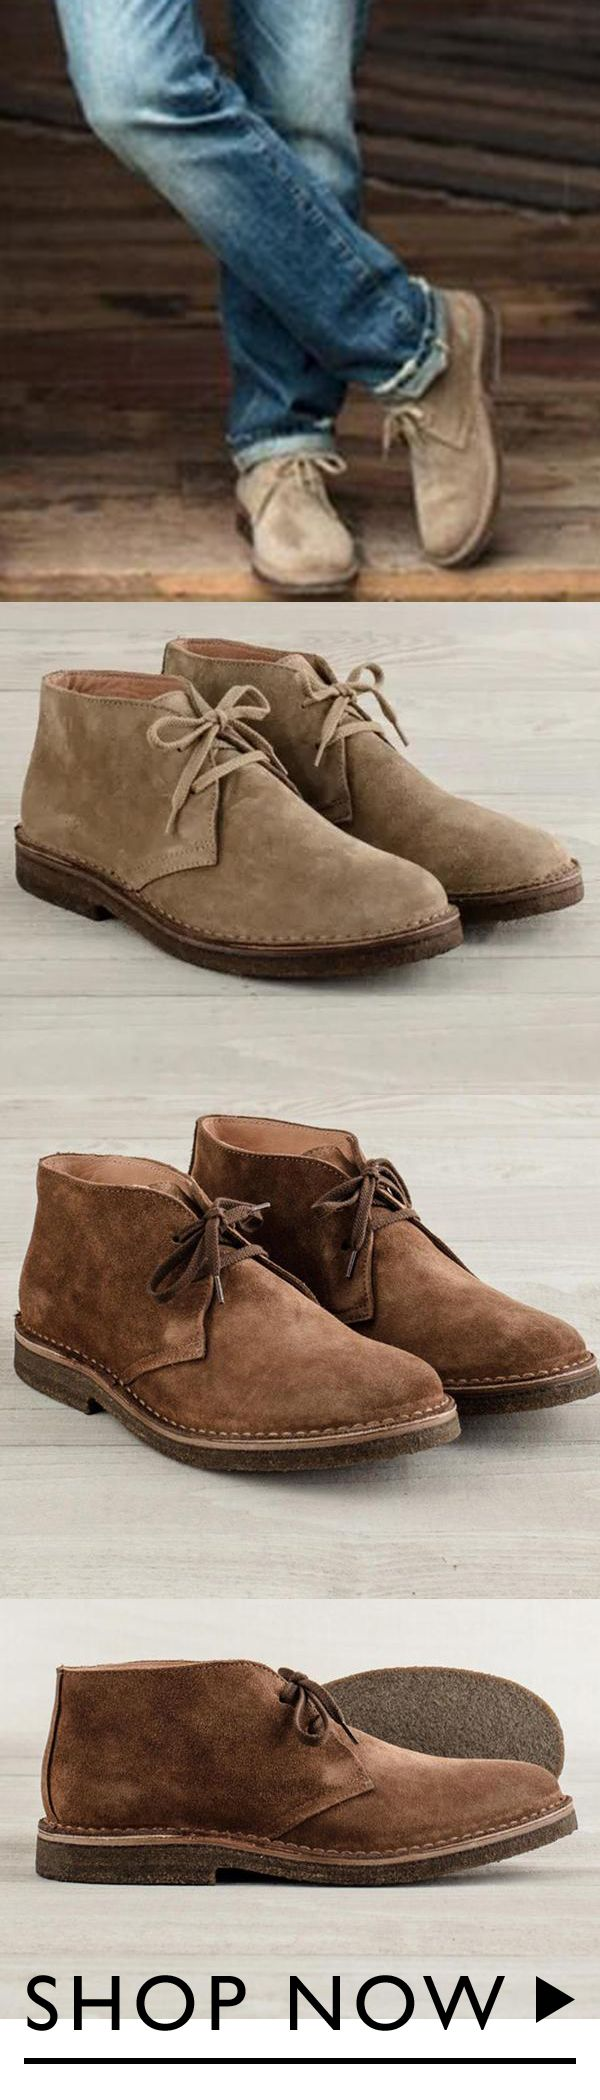 Comfortable Suede Boots   Mens